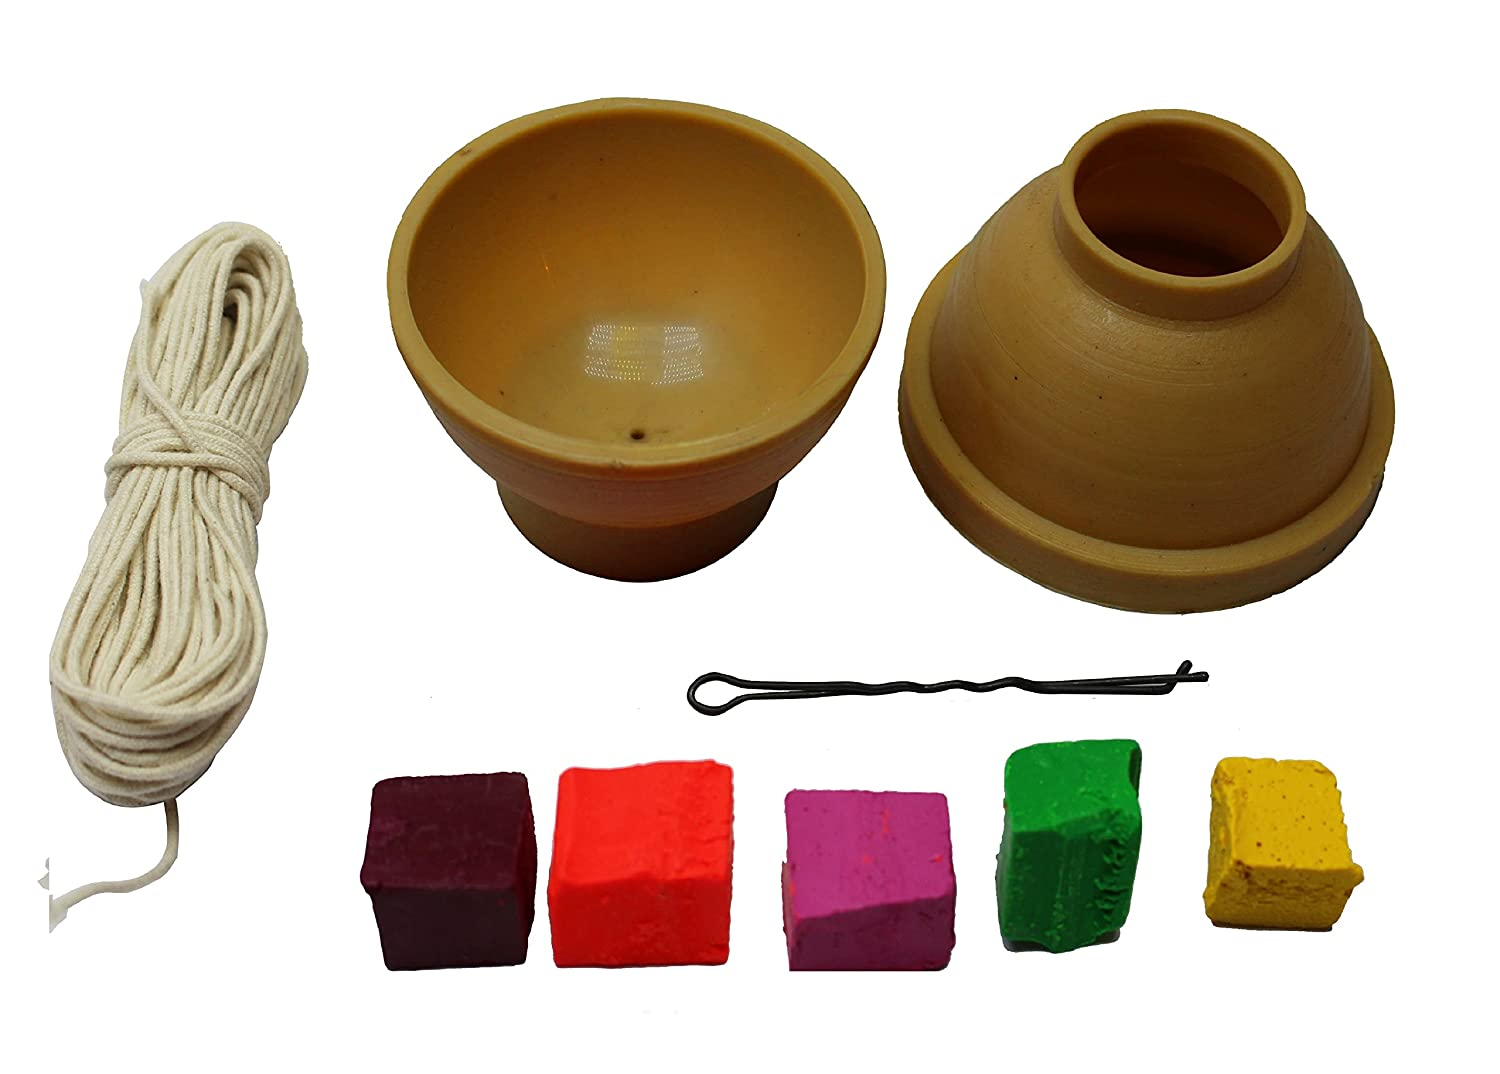 Mini set - Candle dye 5 color and Candle mold make candles at home Handmade Candle